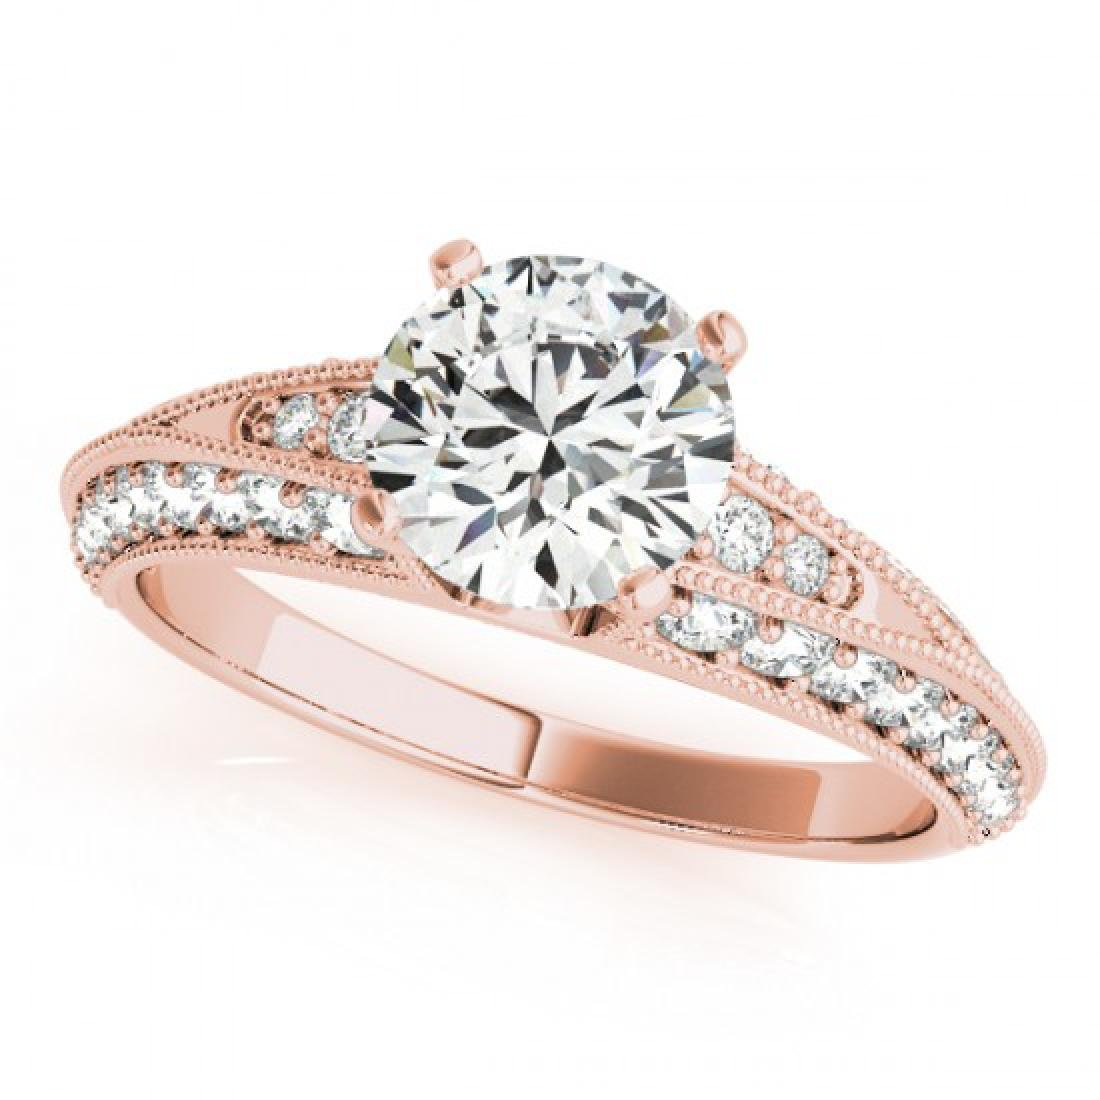 1.33 CTW Certified VS/SI Diamond Solitaire Antique Ring